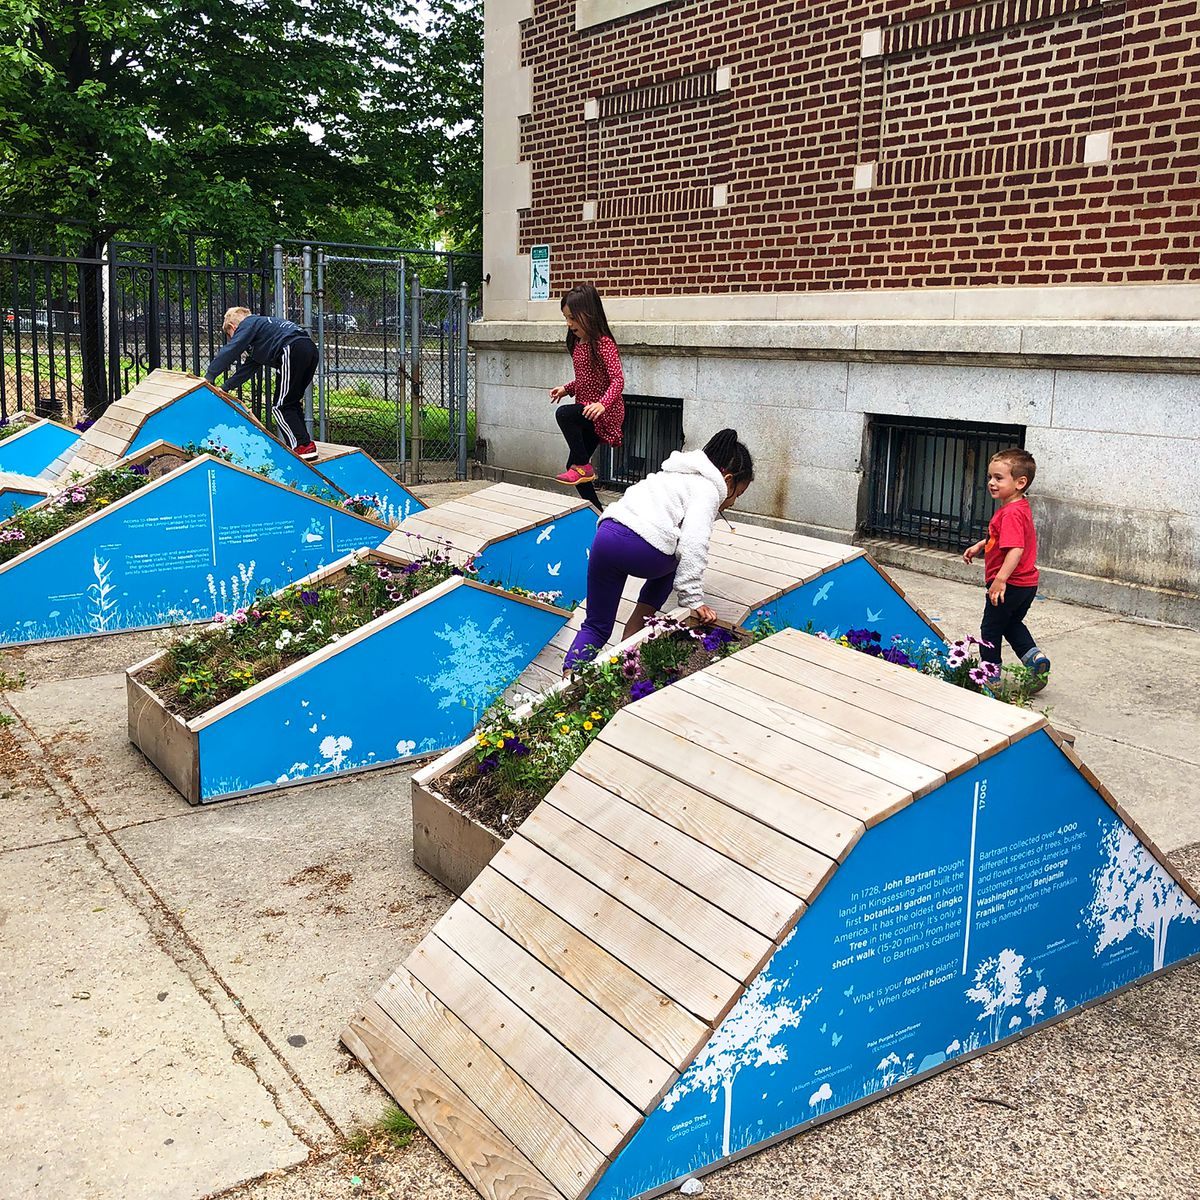 Children play on structures built of wooden planks with sections containing dirt for plants to grow.